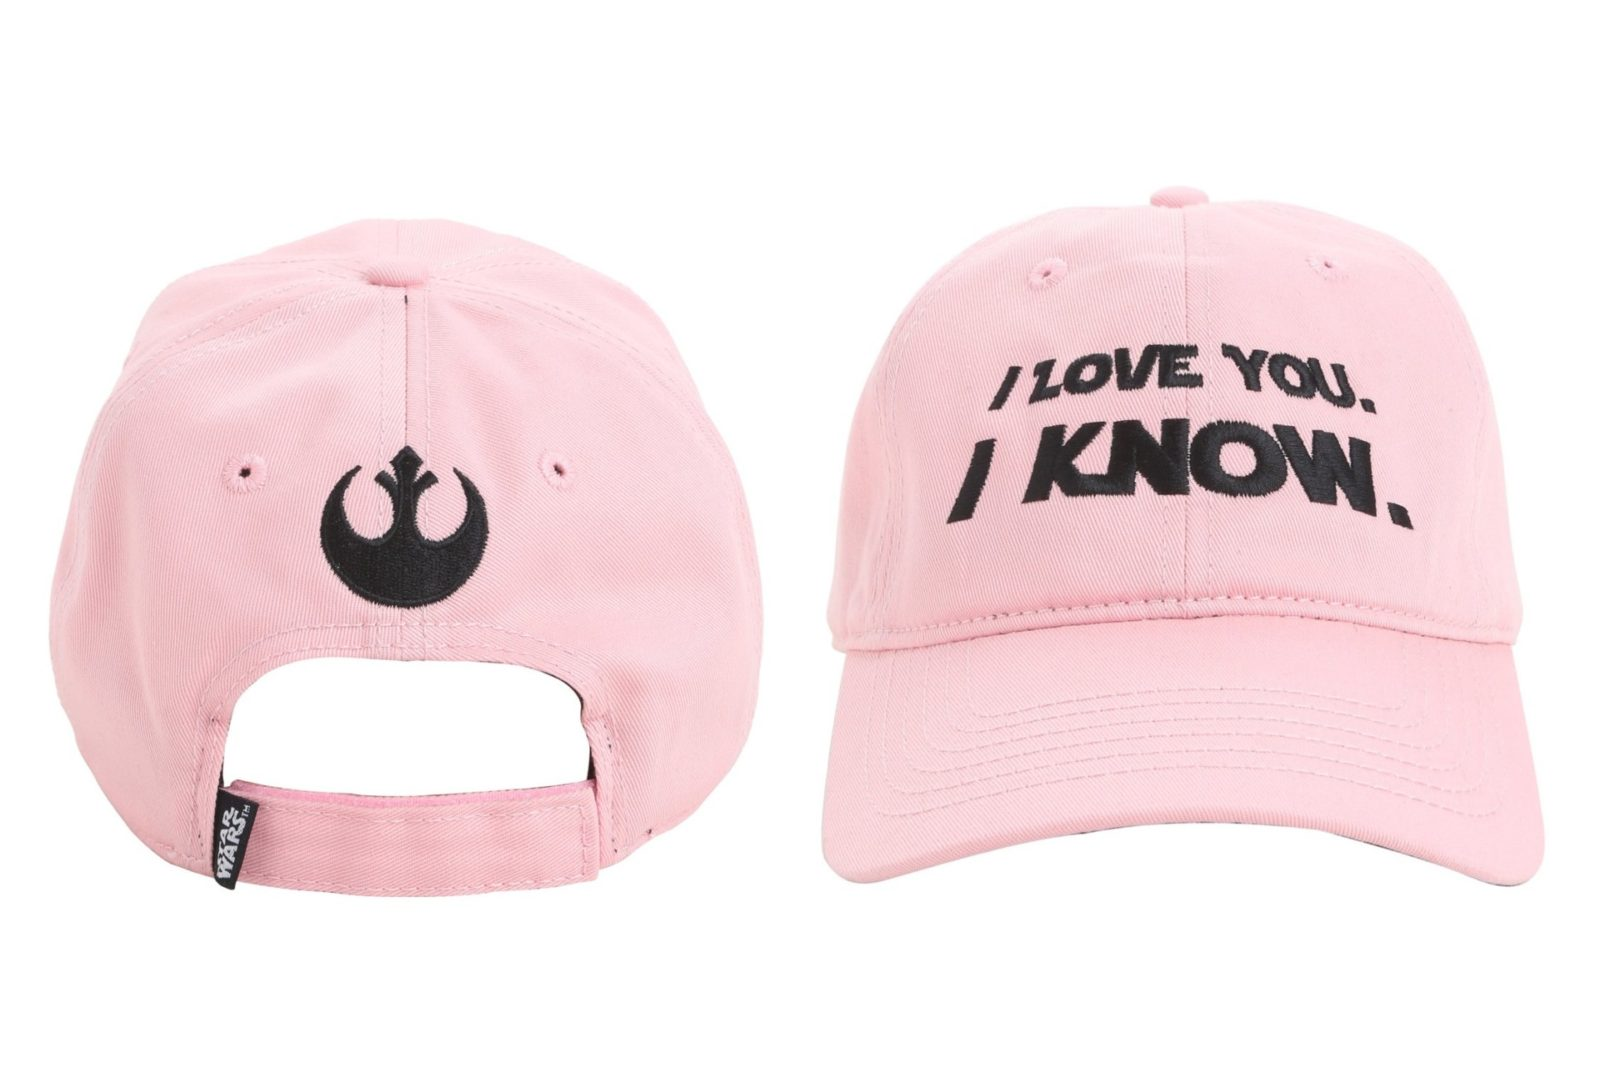 'I Love You' – 'I Know' cap at Hot Topic